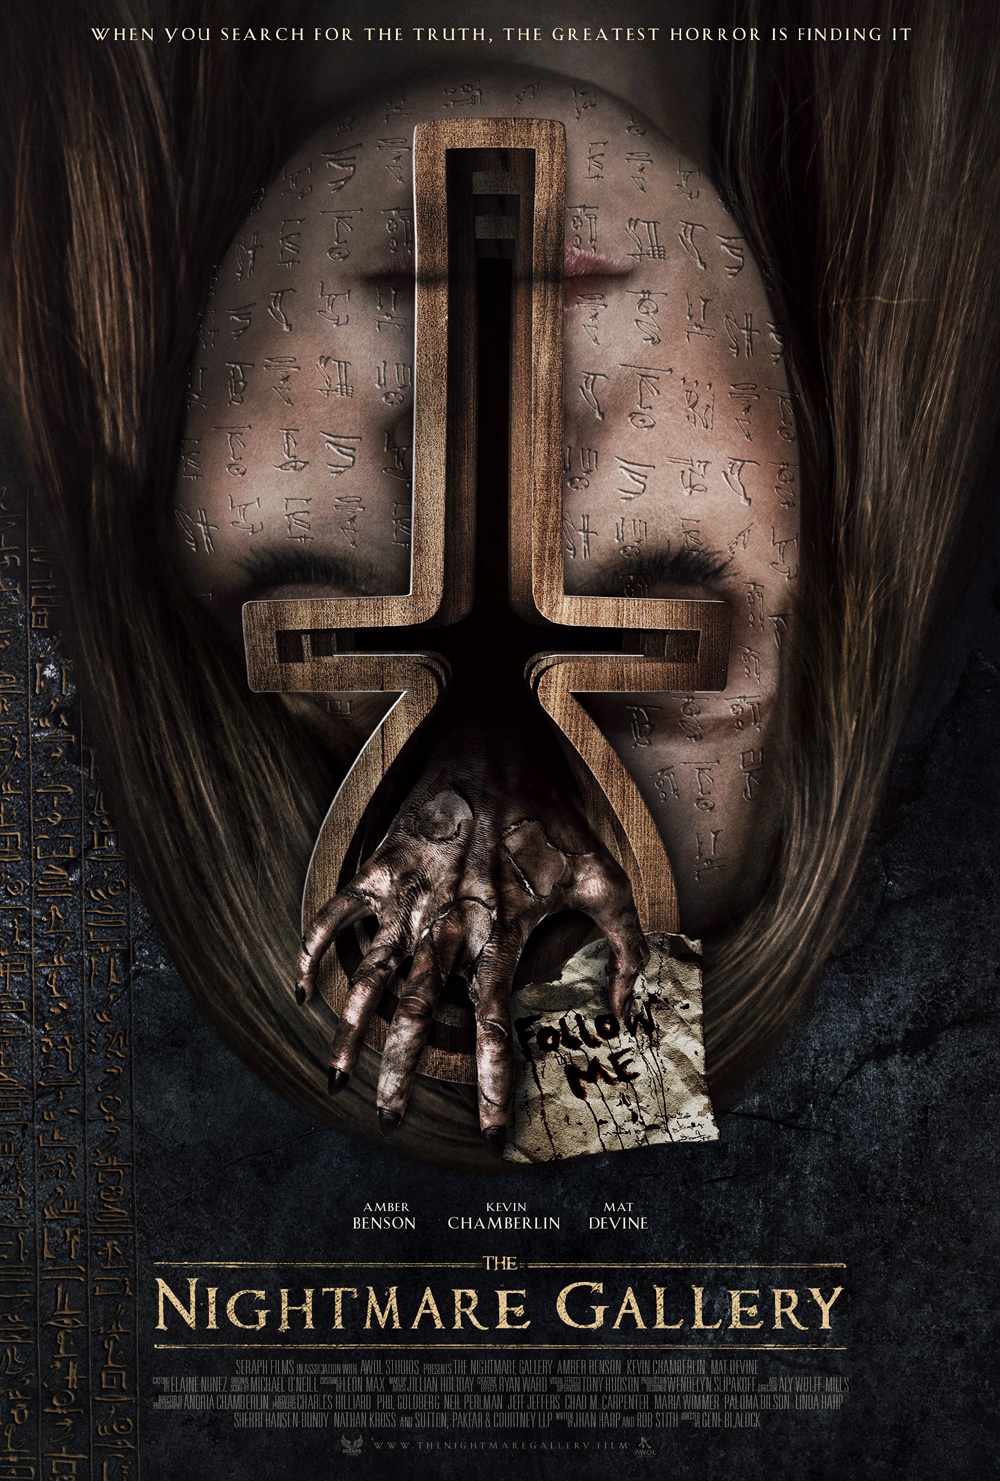 Nightmare Gallery Trailer, Nightmare Gallery Poster, Amber Benson